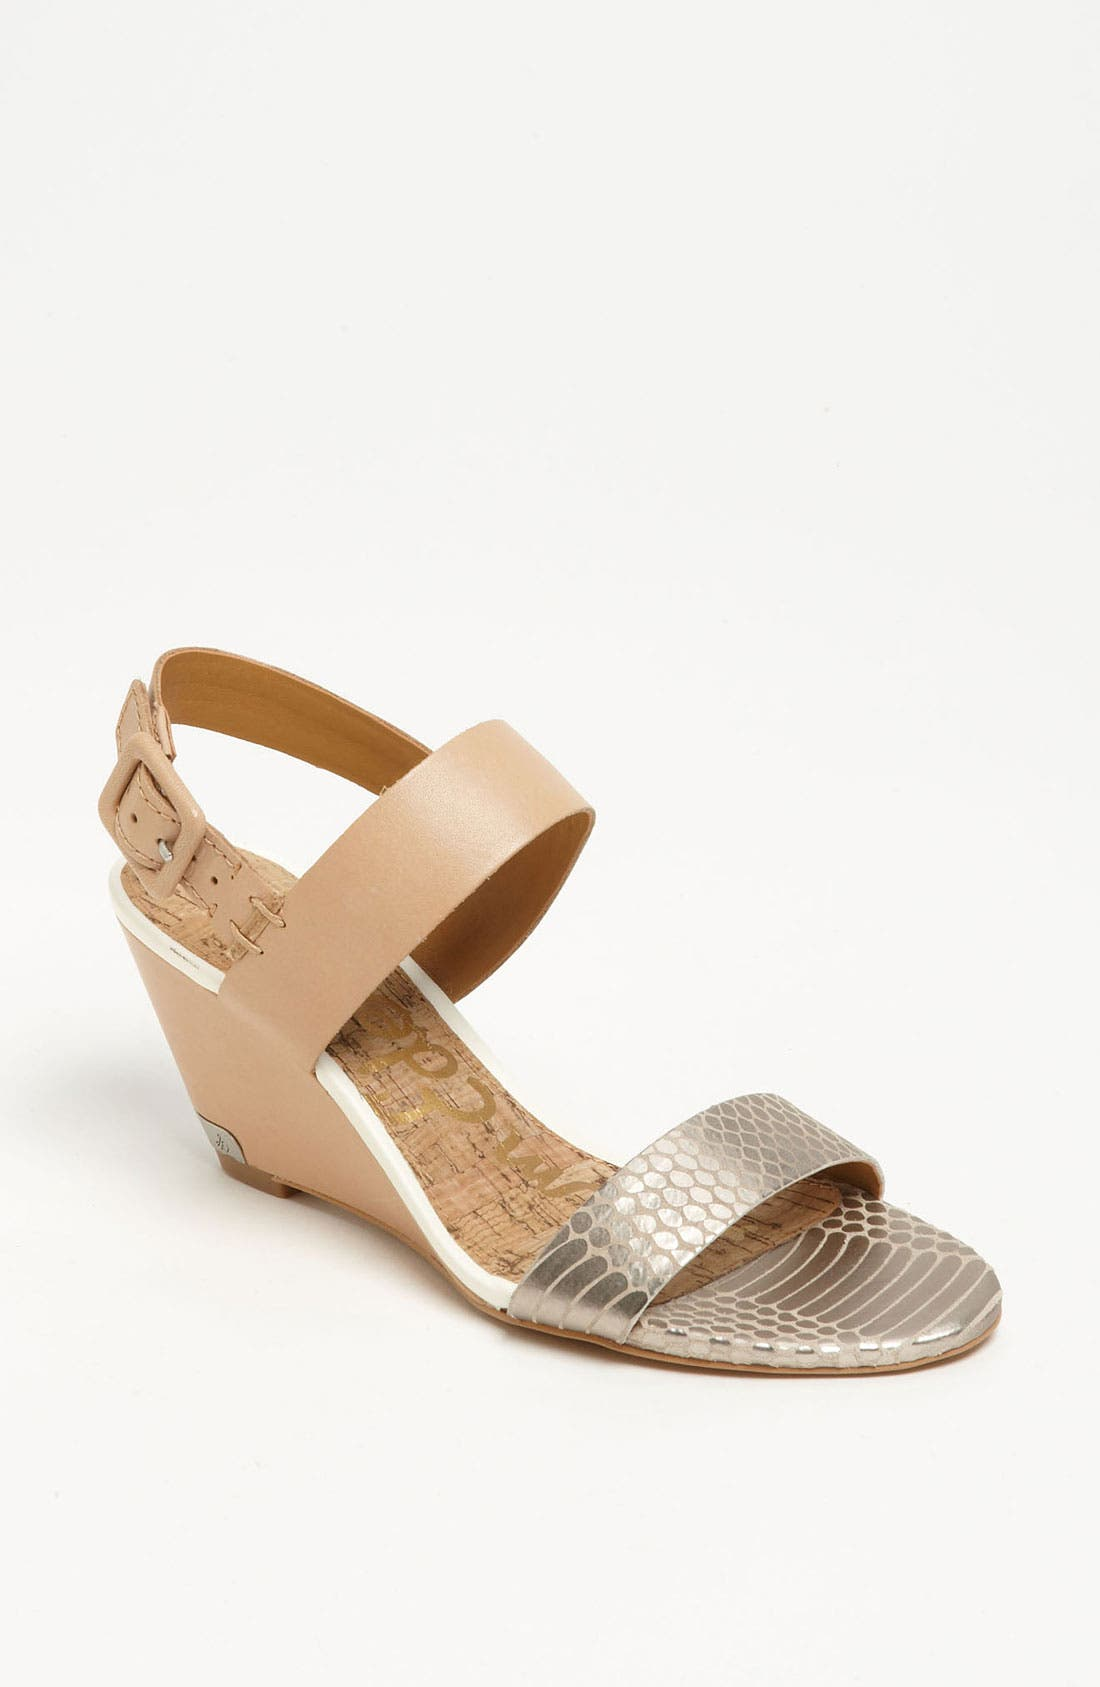 Alternate Image 1 Selected - Sam Edelman 'Sutton' Sandal